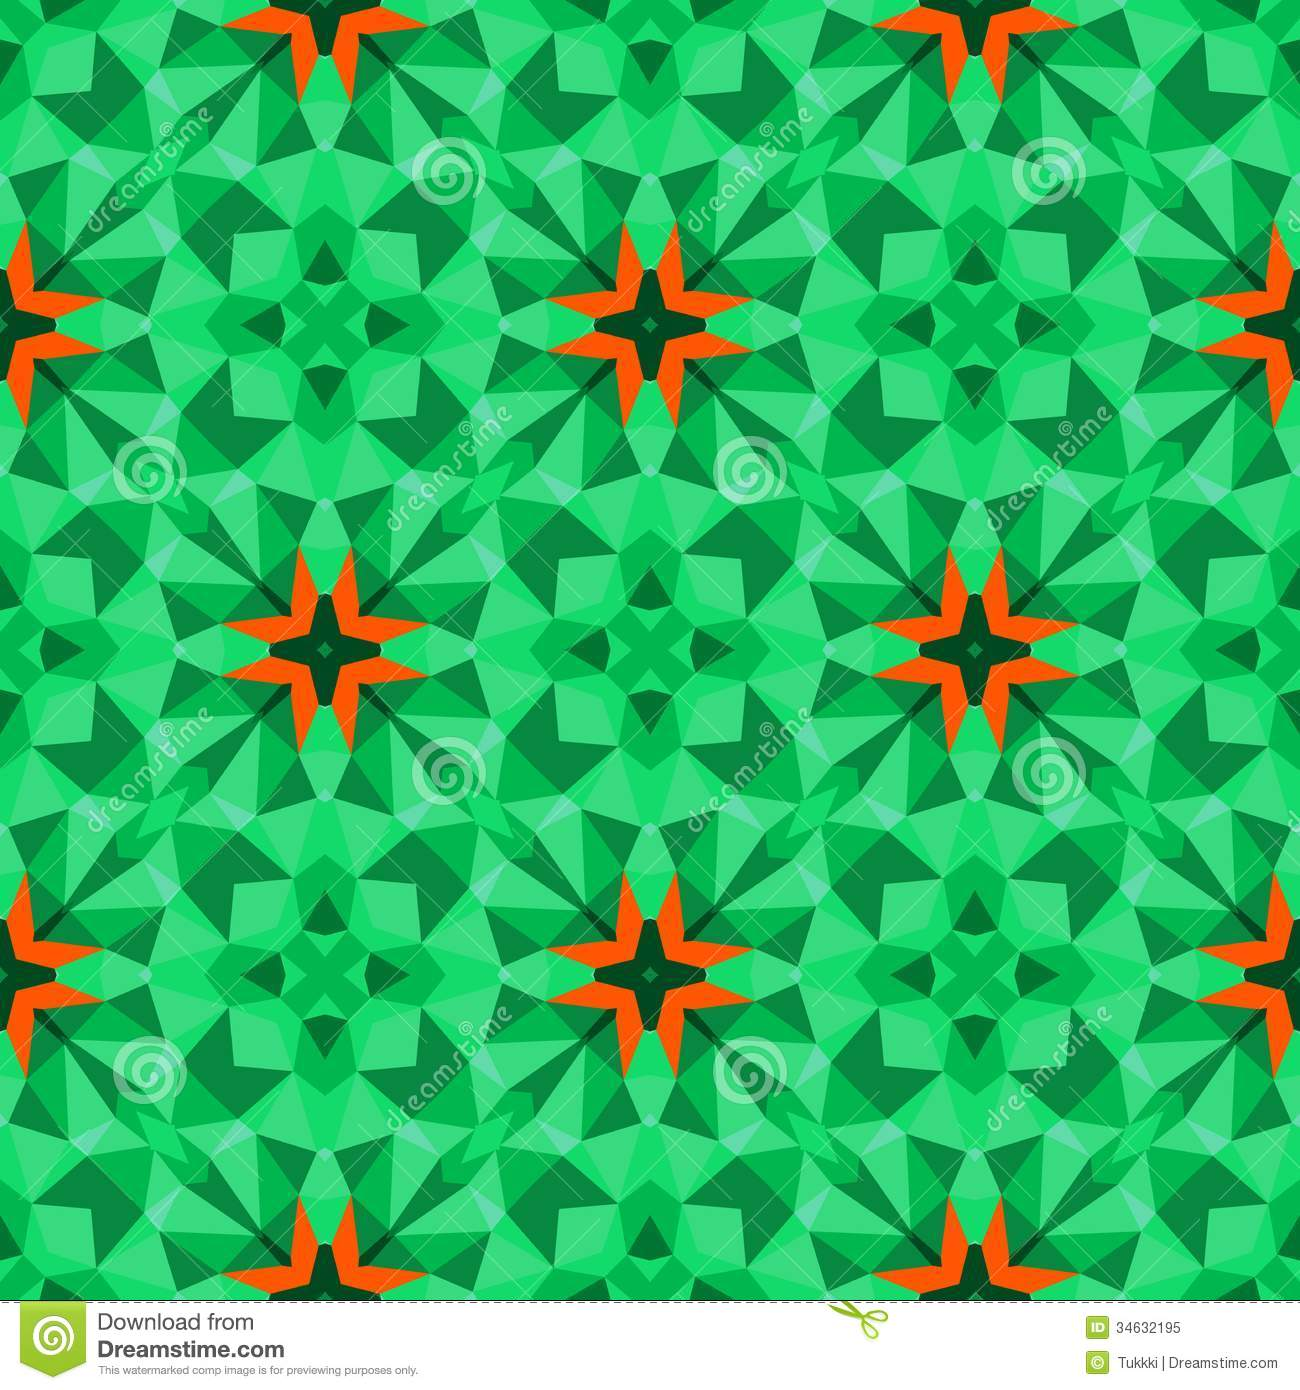 Emerald Home Decor Fabric